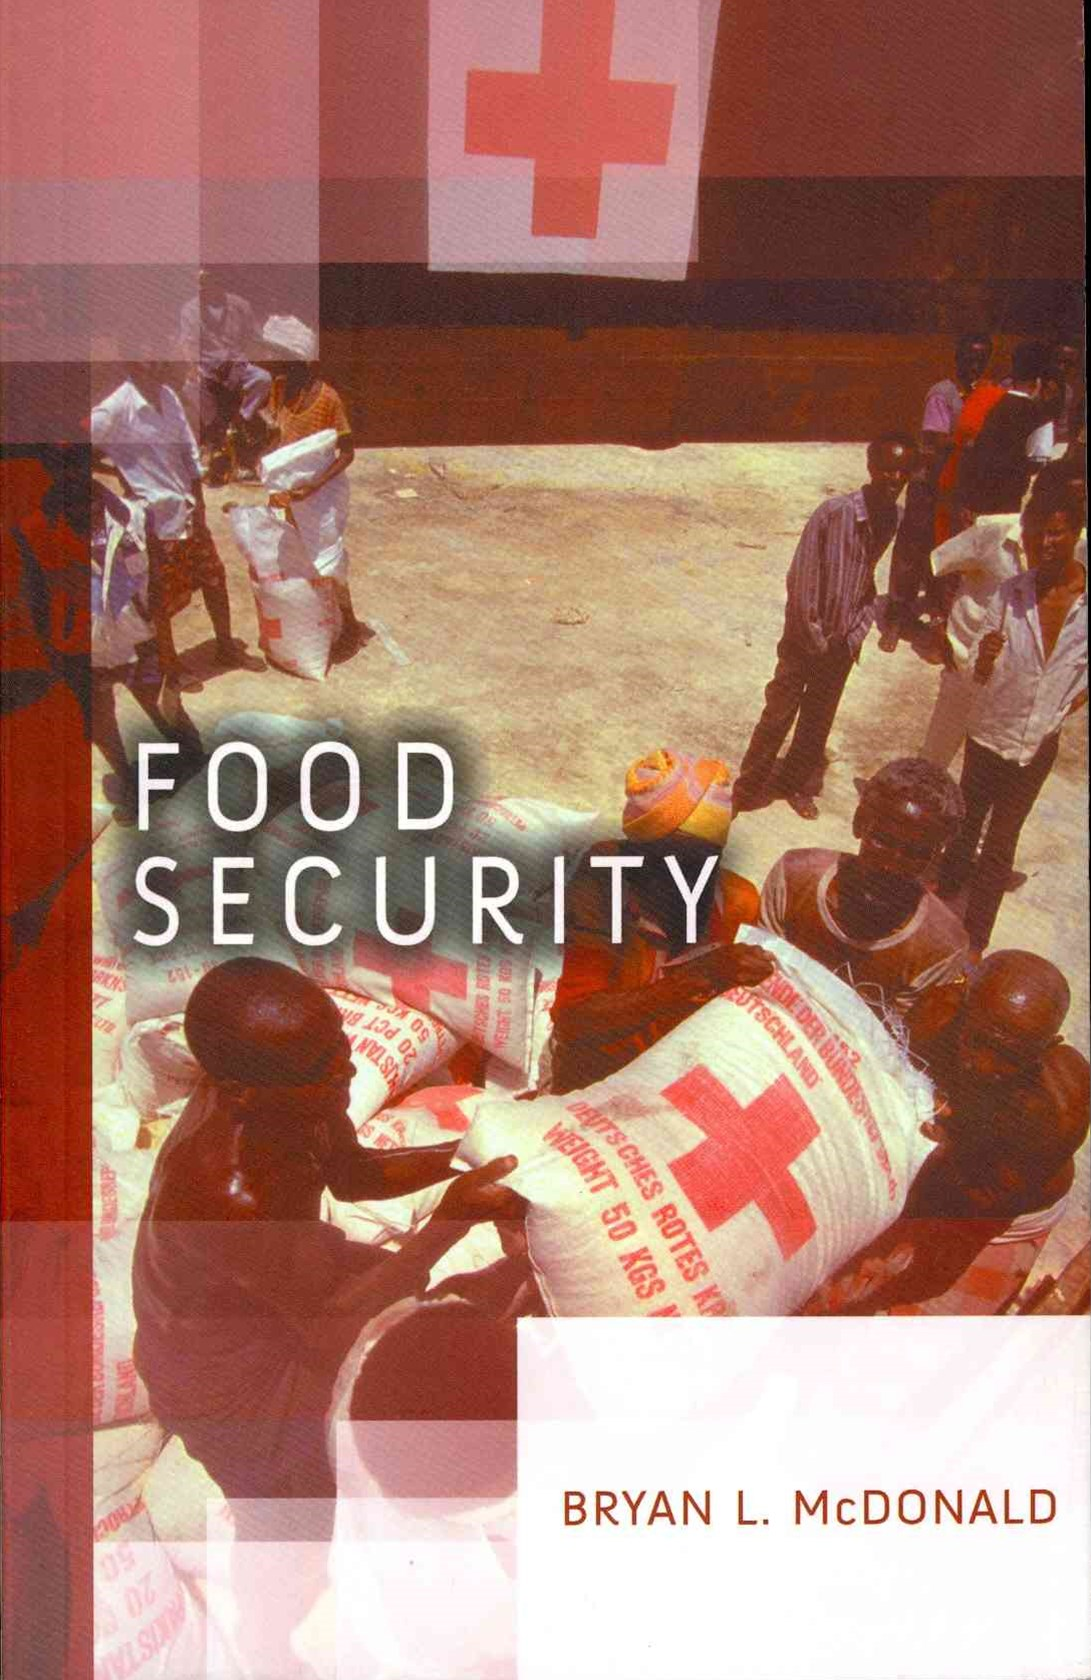 Food Security - Addressing Challenges From        Malnutrition, Food Safety and Environmental Change